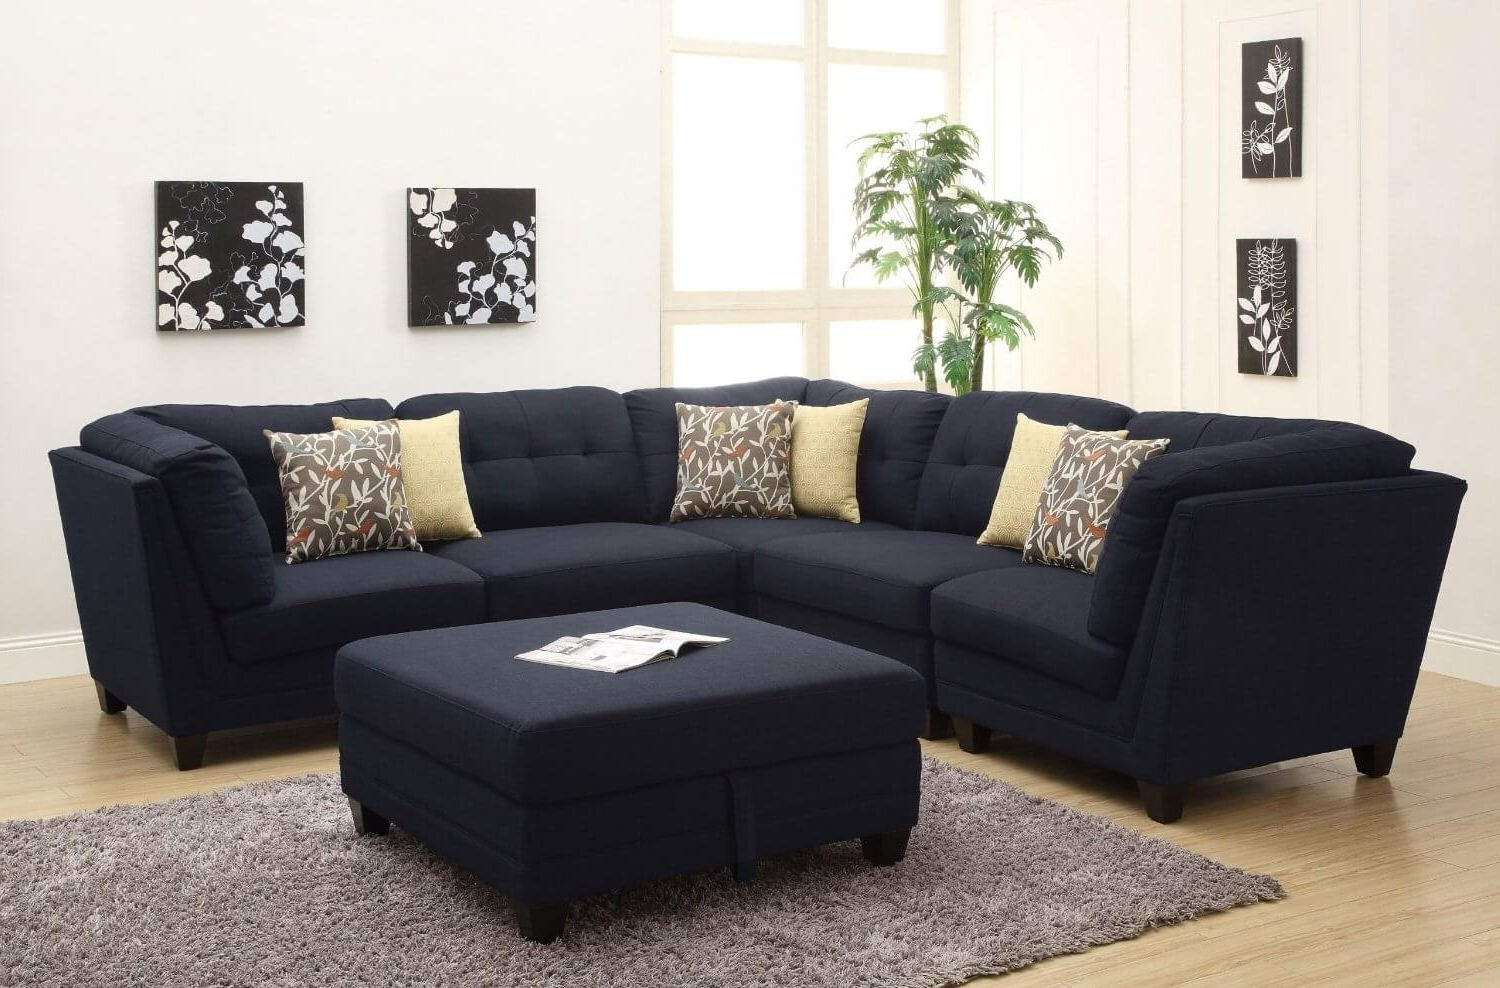 Sectional Sofas Under 900 For Famous 100 Awesome Sectional Sofas Under $1,000 (2018) (View 4 of 20)